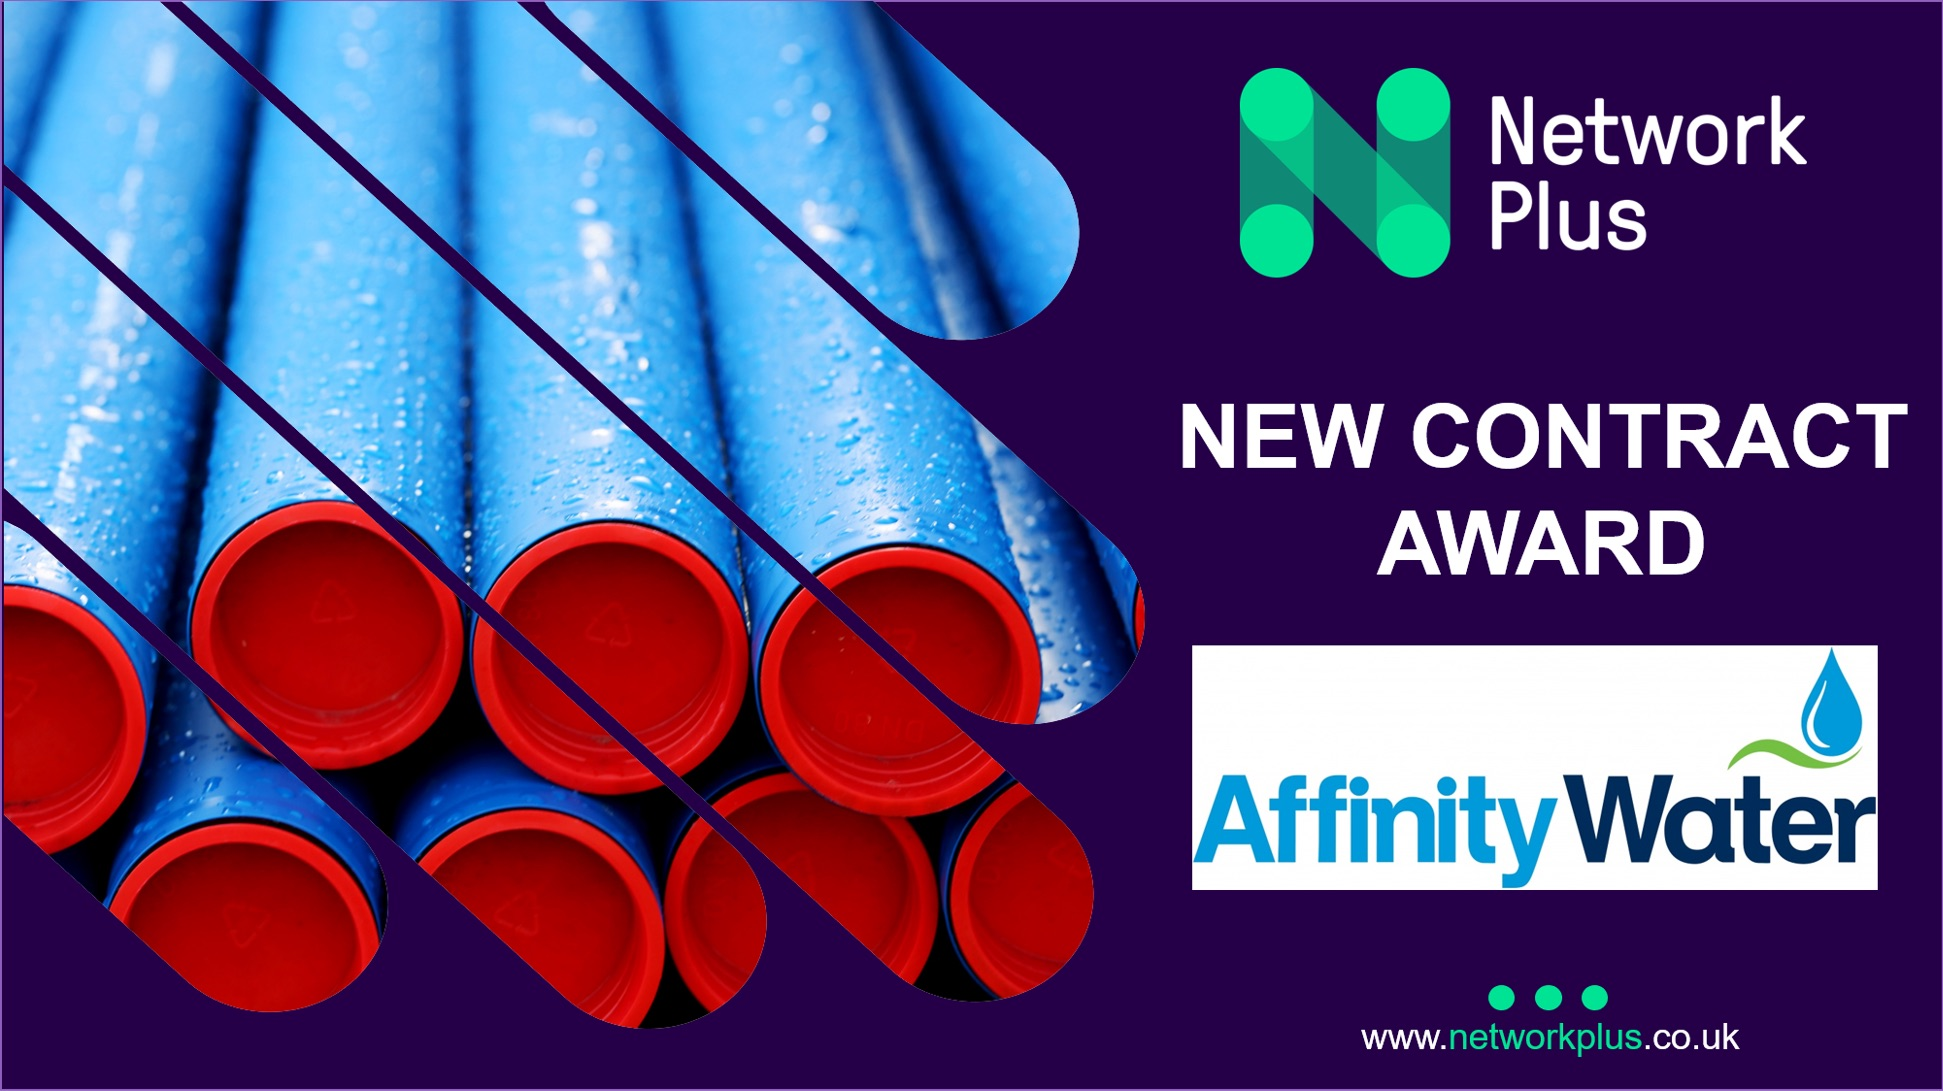 Network Plus secures Affinity Water developer services contract